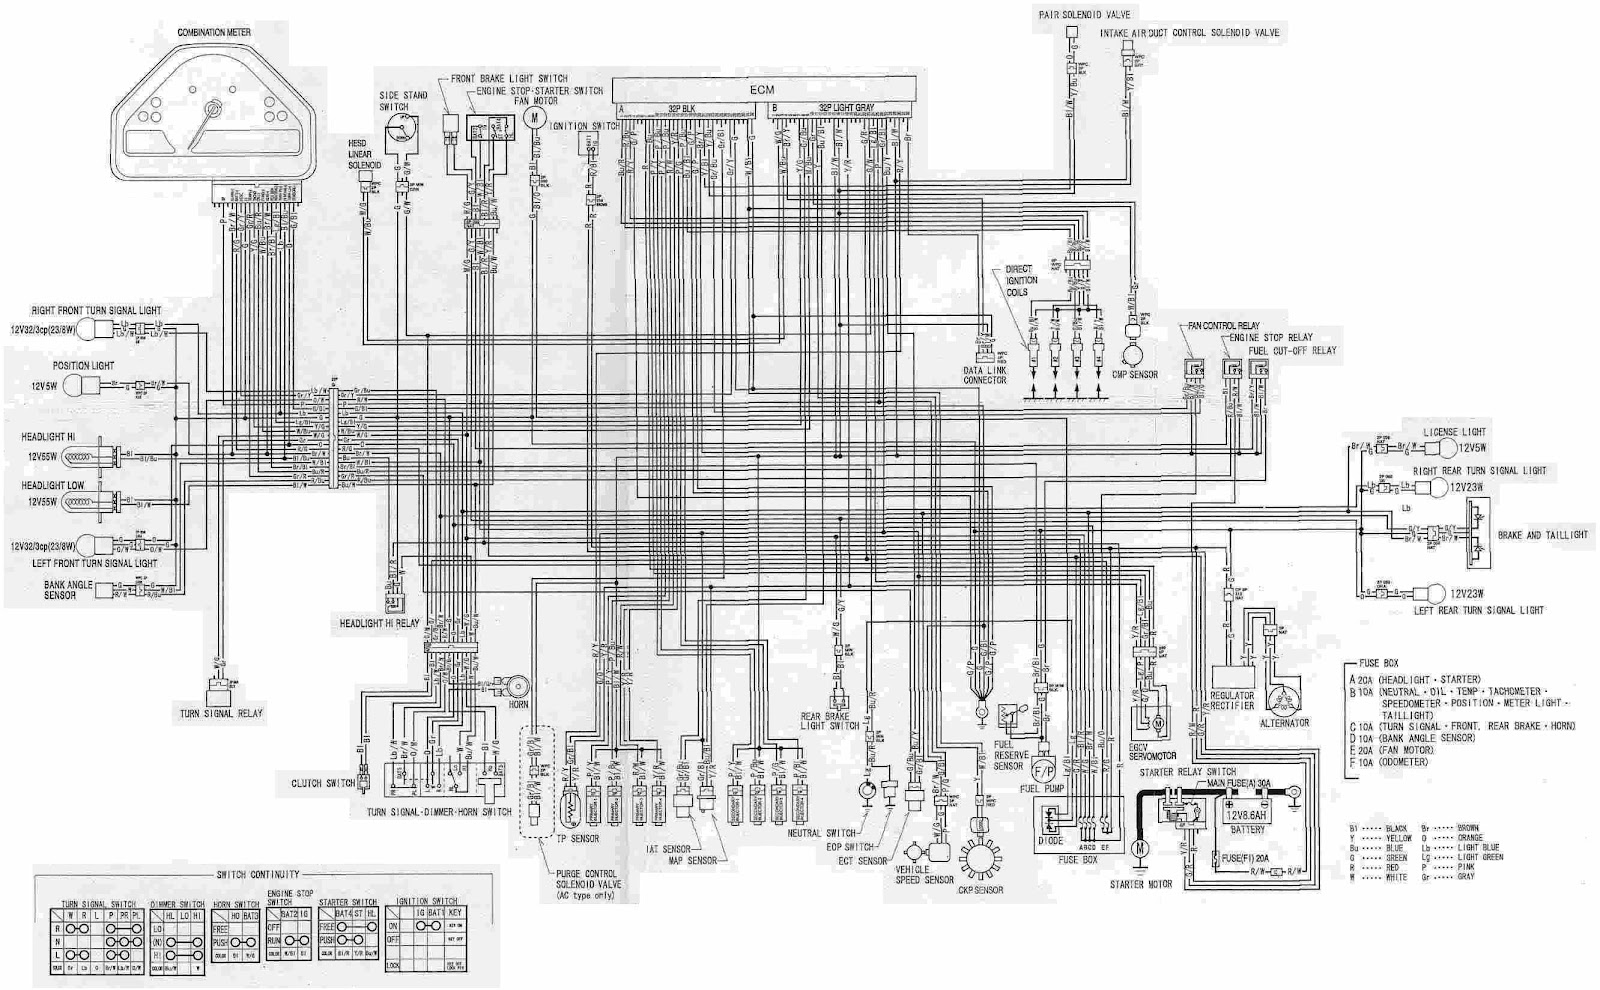 2005 Cbr 600 Rr Wiring Diagram For Display Schematic Diagrams Honda Rc51 2002 Xl 250